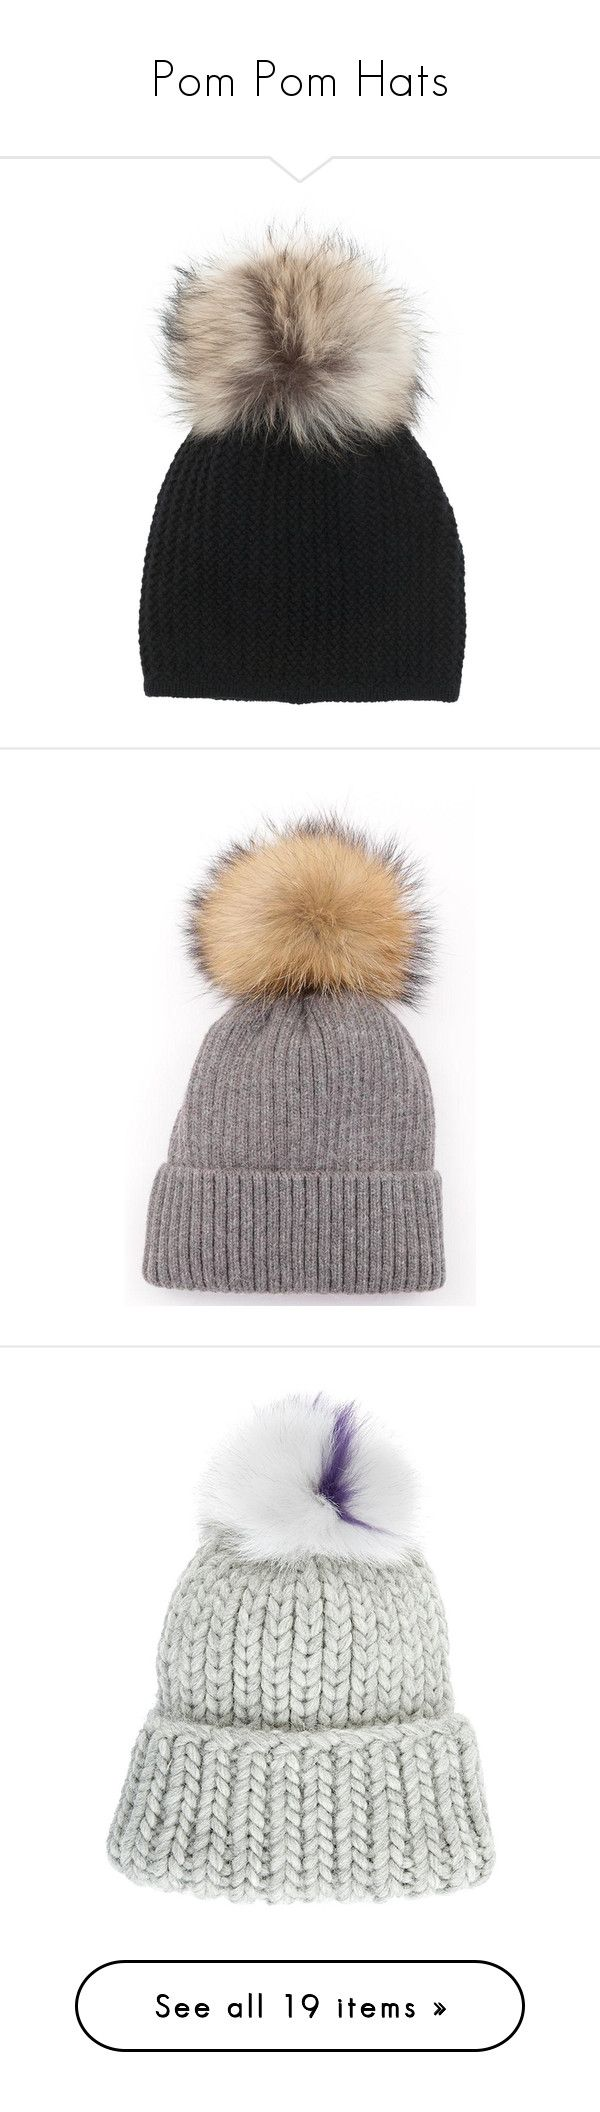 """Pom Pom Hats"" by tiana25 ❤ liked on Polyvore featuring accessories, hats, beanies, headwear, black, fur pom pom hat, fur hat, fur pom beanie, beanie cap hat and fur pom-pom hats"